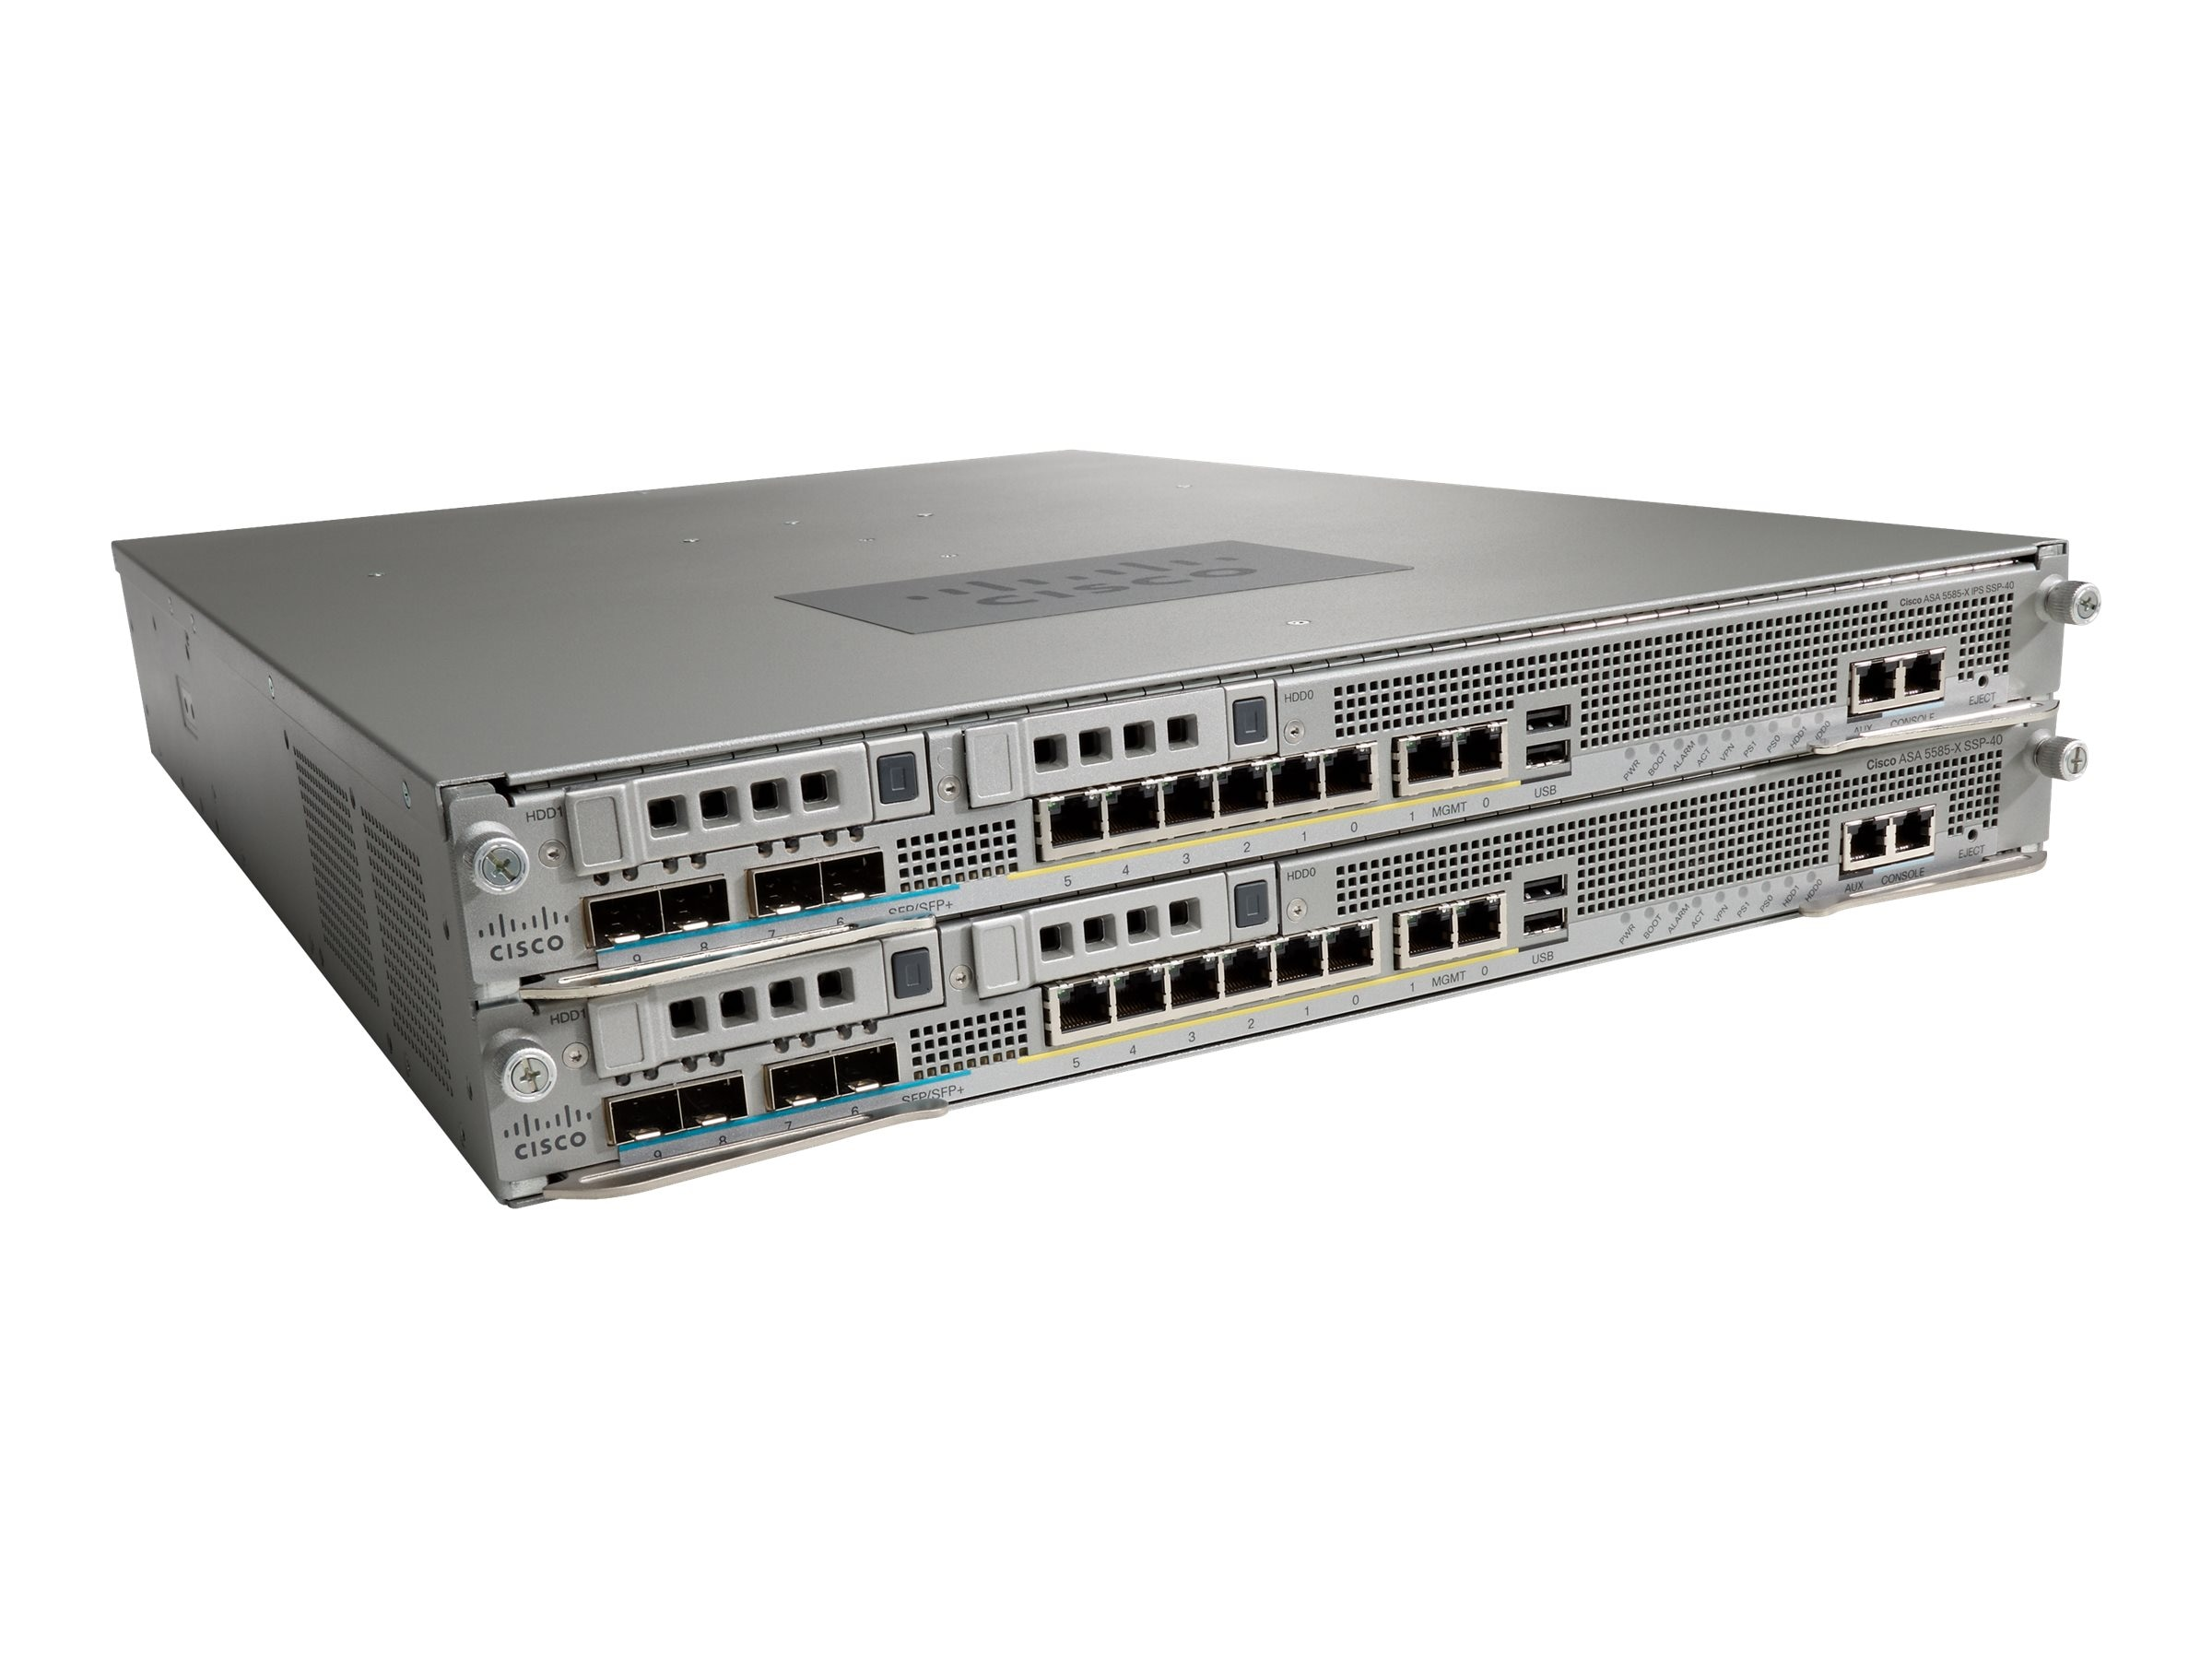 Cisco 5585-X SSP-60, FirePOWER